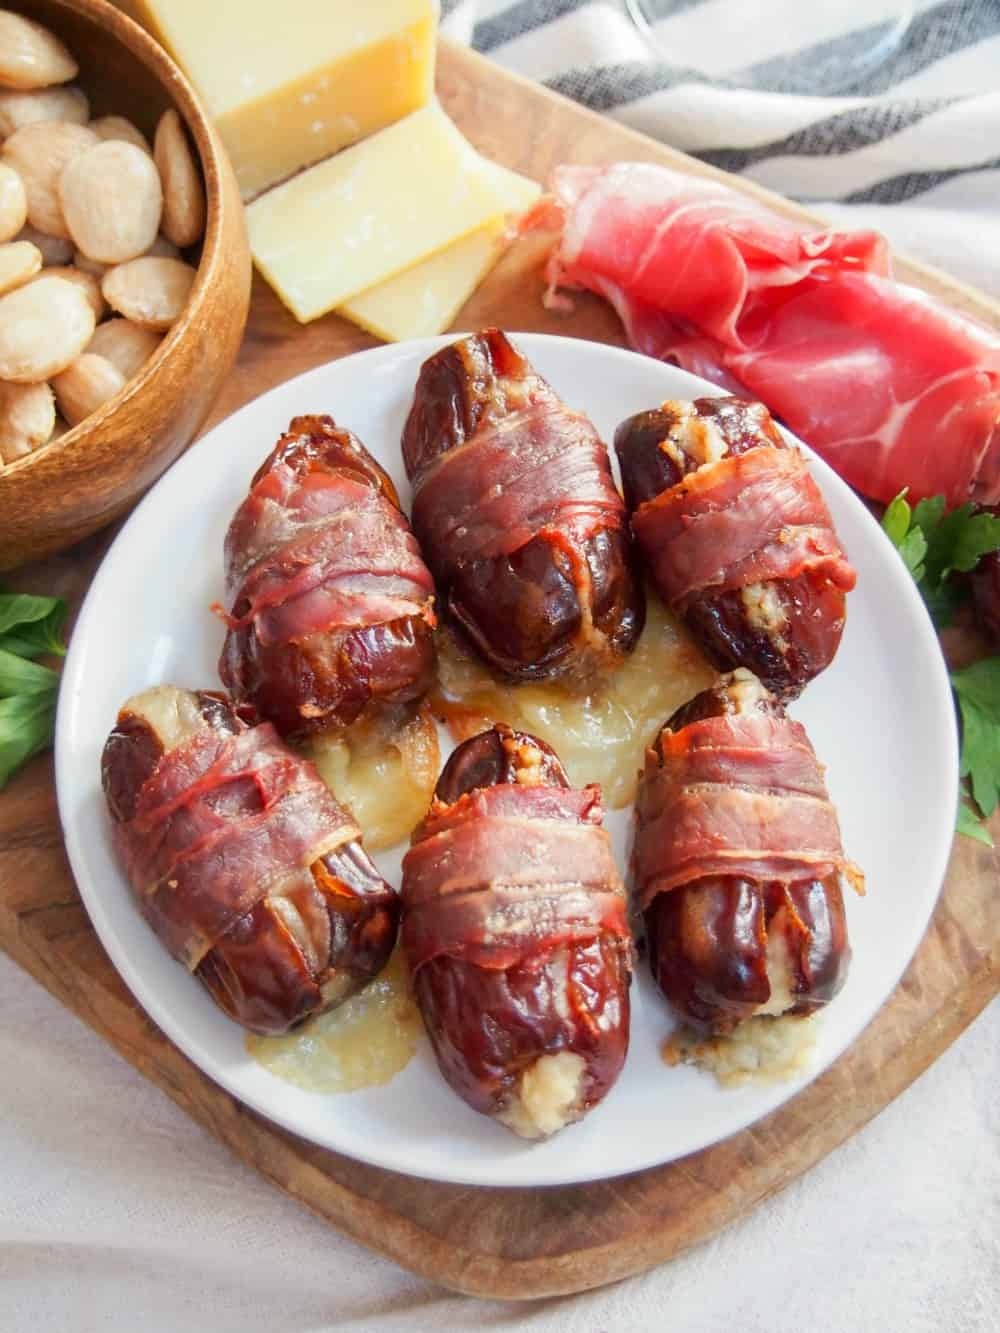 These prosciutto wrapped dates have only 3 ingredients, take no time to prepare and are incredibly moreish. A delicious sweet-salty mix, they're perfect for parties and snack attacks.